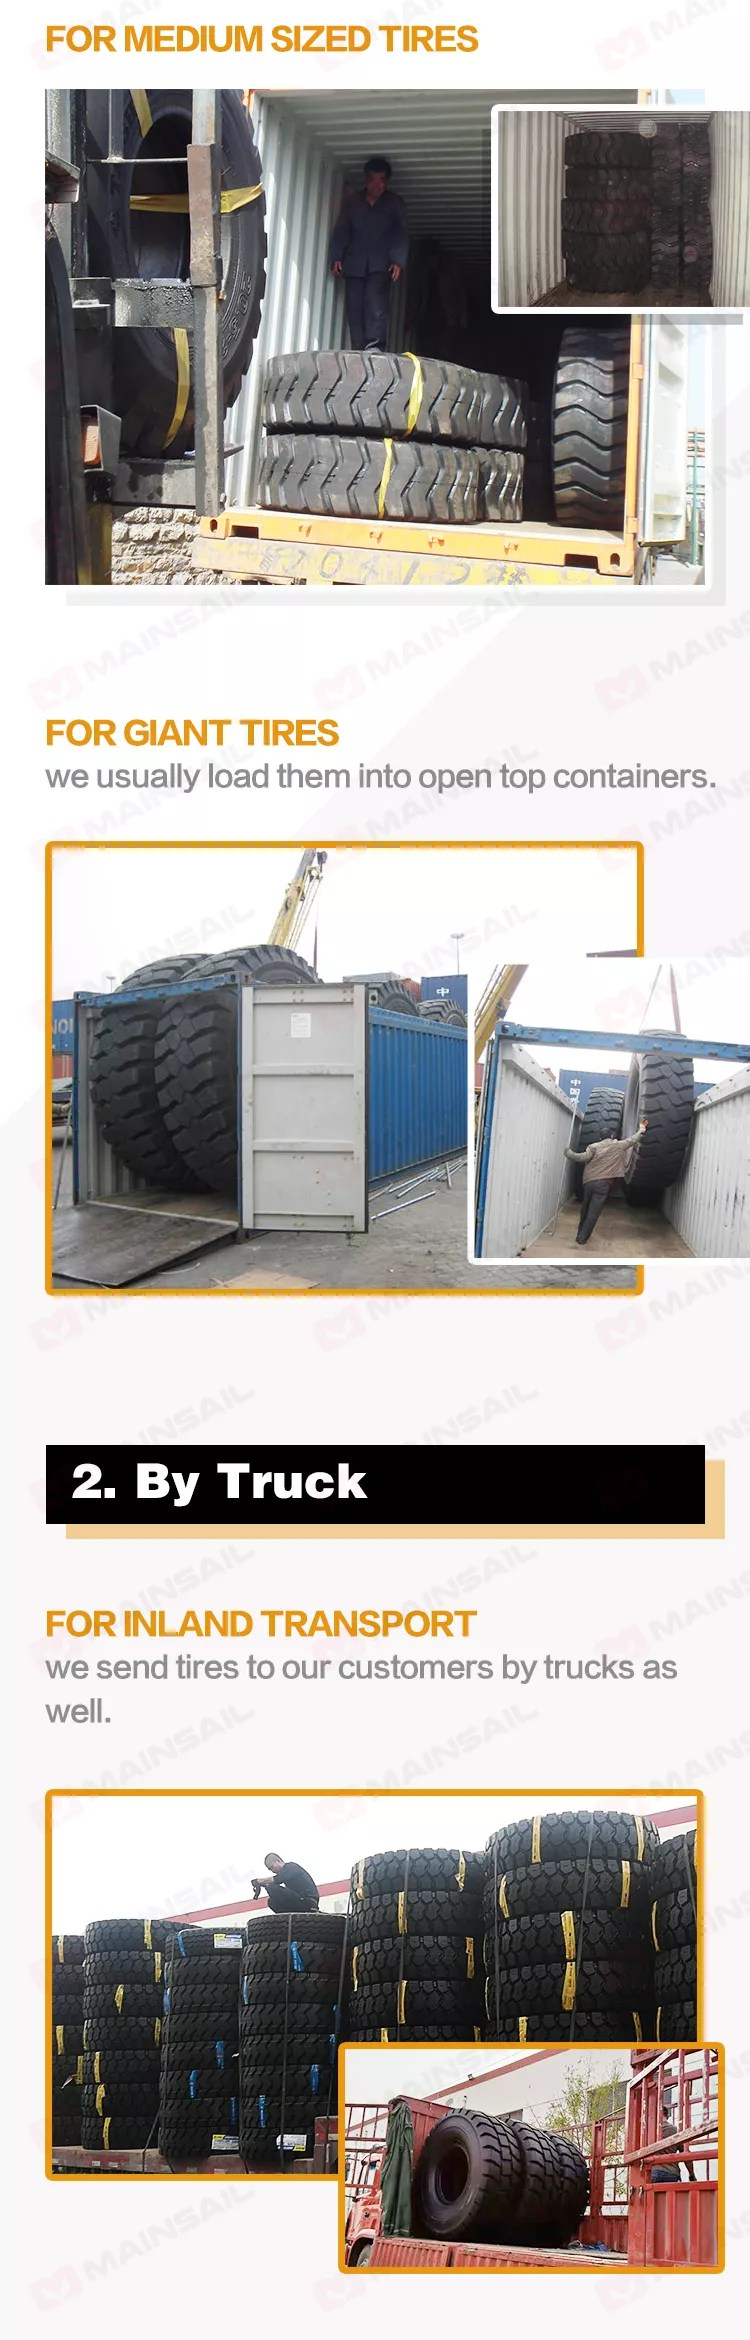 Giant Tires For Sale : giant, tires, BRAND, Tires, CB768,, Westlake, Goodride, Chaoyang, Brand,, Product, Details, Shuanglun, (Shanghai), Alibaba.com